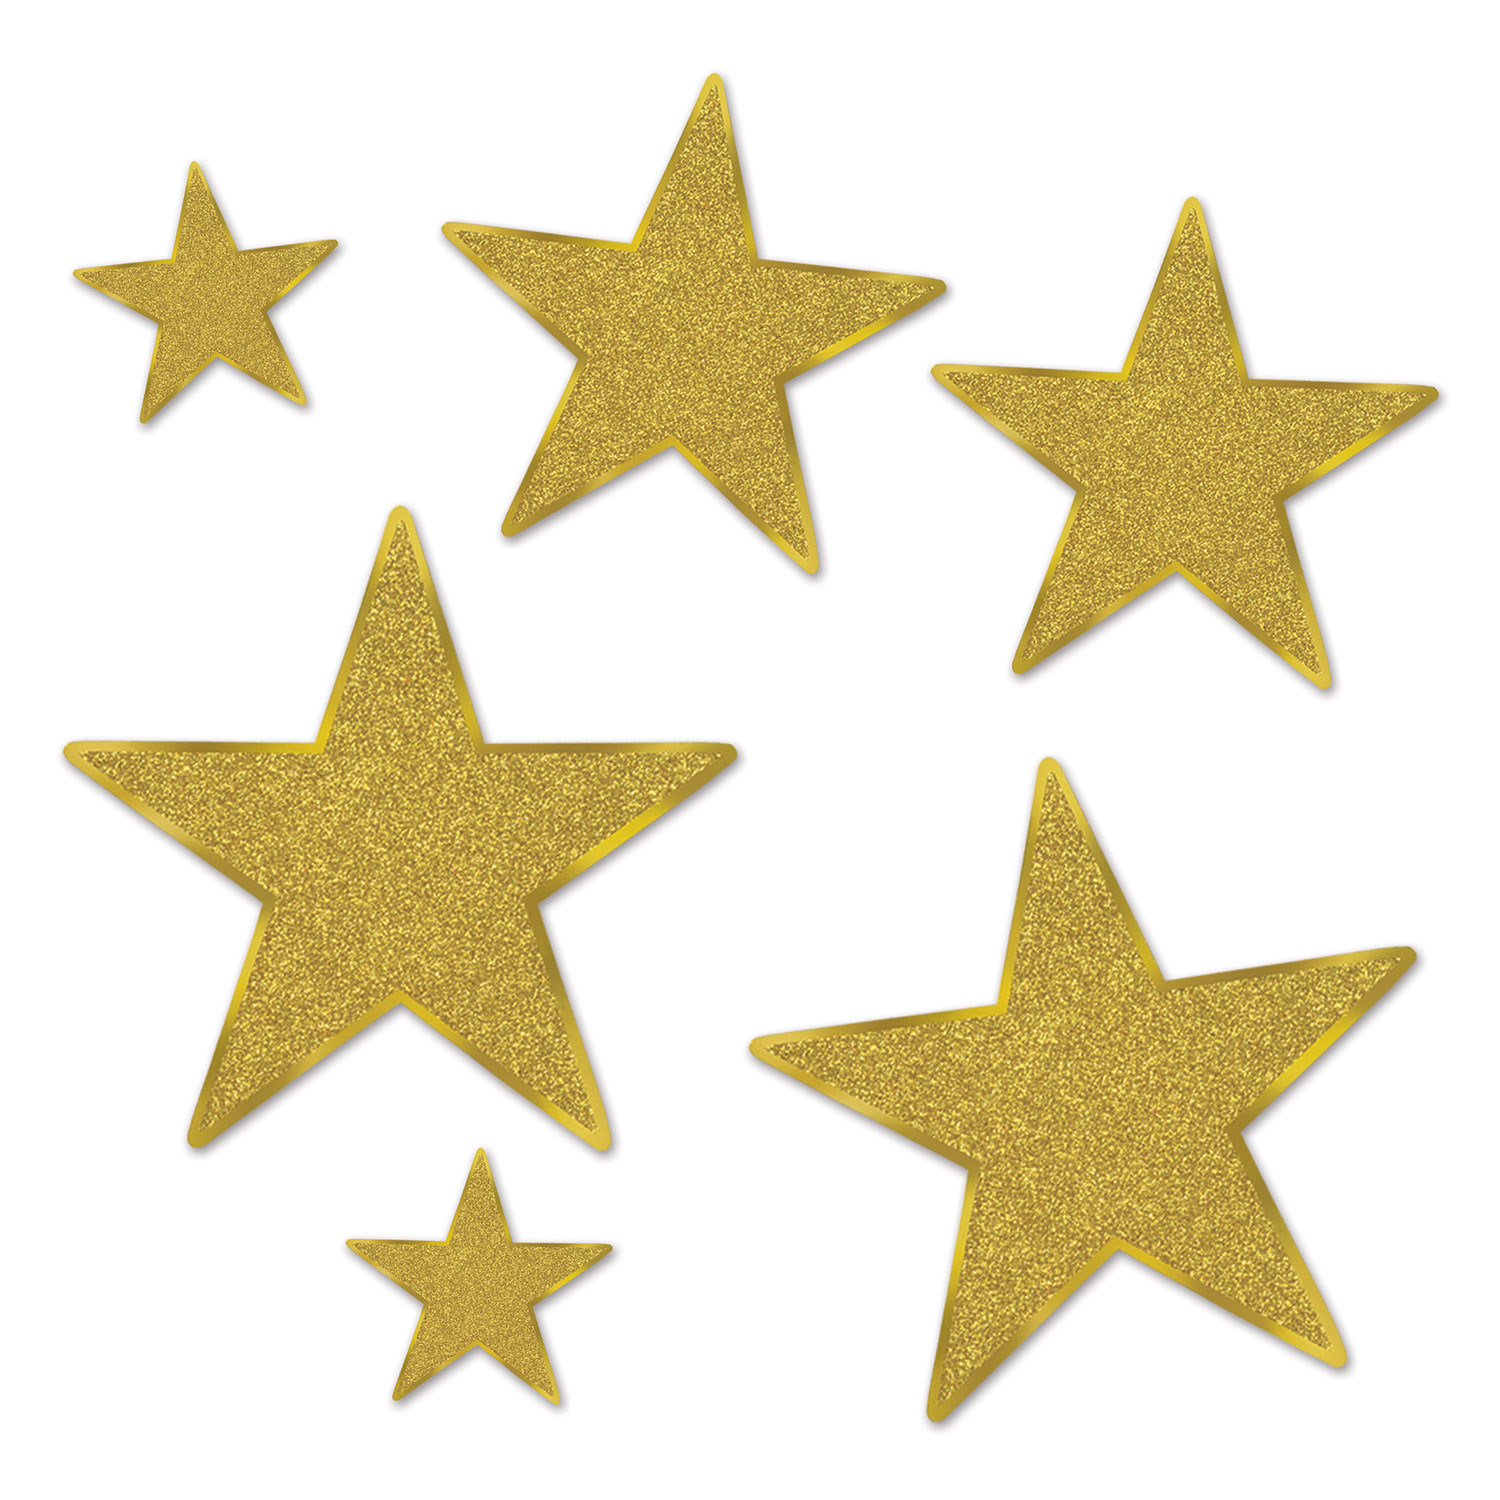 Assorted sized gold star cutouts with glitter.